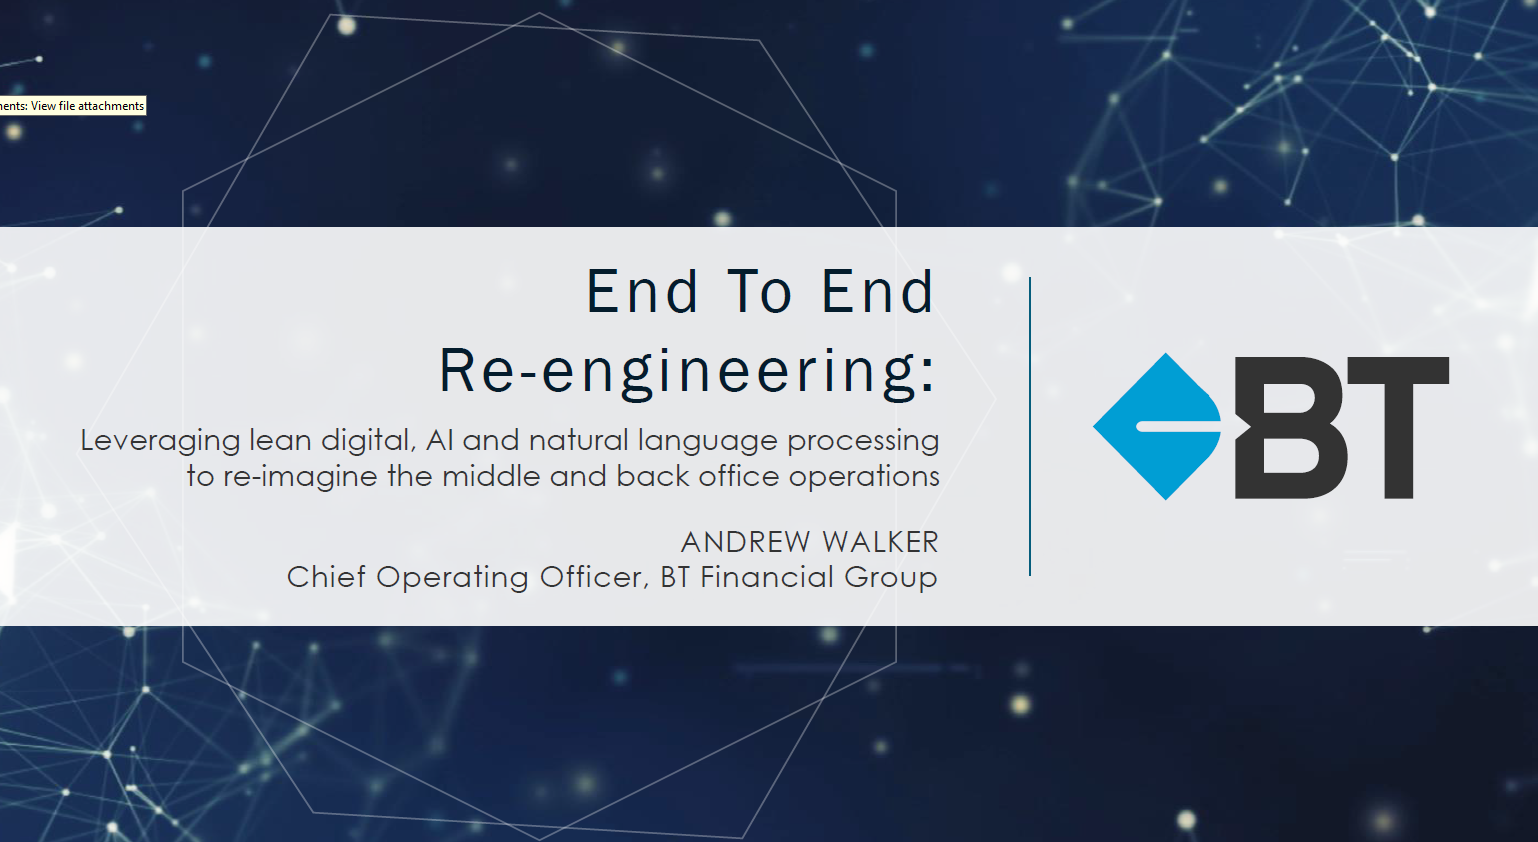 End-to-end re-engineering at BT Financial